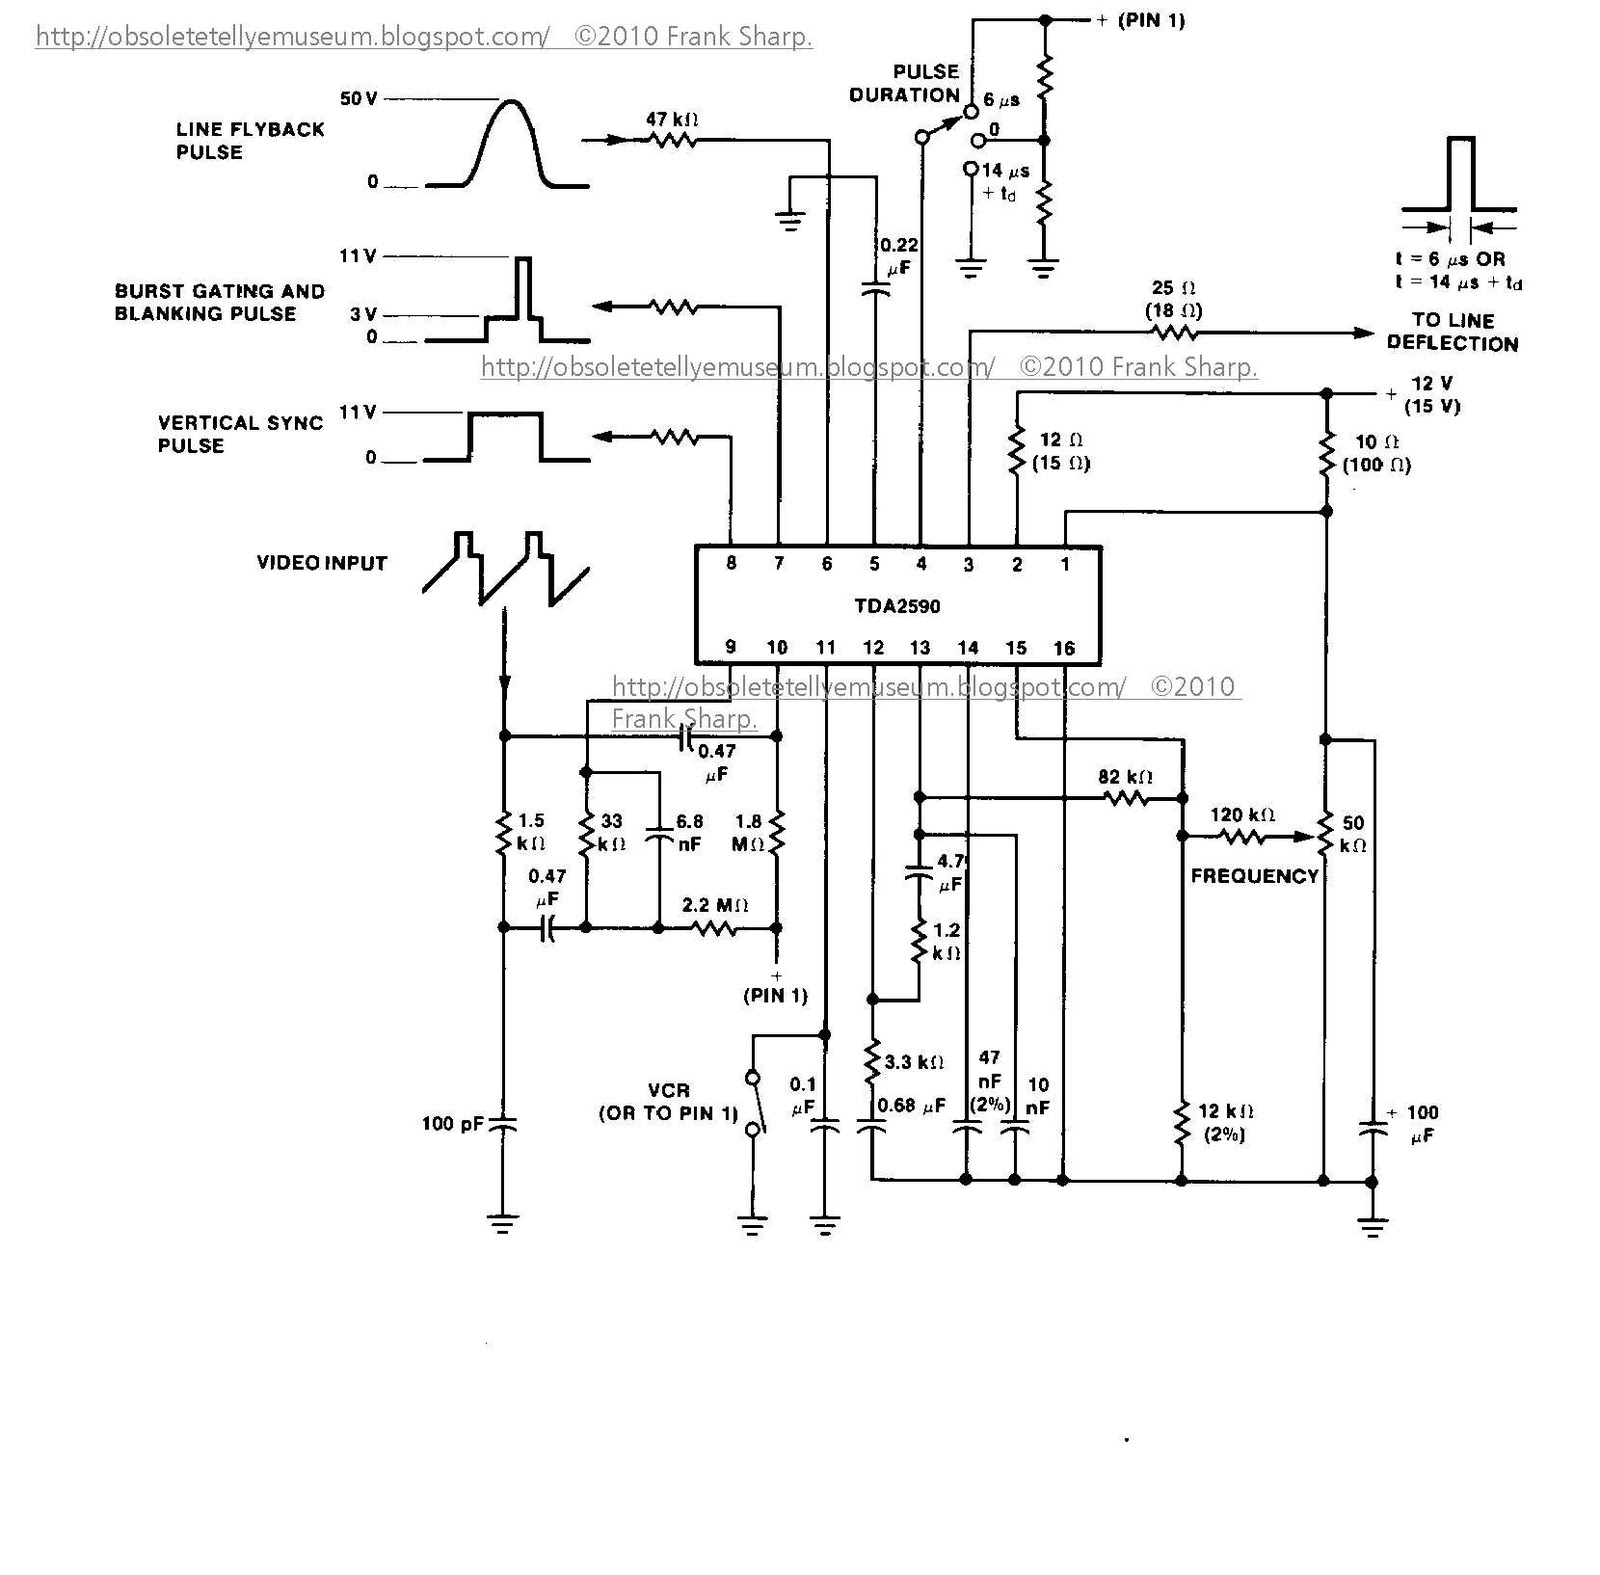 Rg6 Wiring Diagram furthermore Mitsubishi Outlander Parts Diagram as well Voxson T6643cd Chassis 20ax Units View as well Lg Tv Connection Diagram moreover En atxps. on vcr wiring diagram